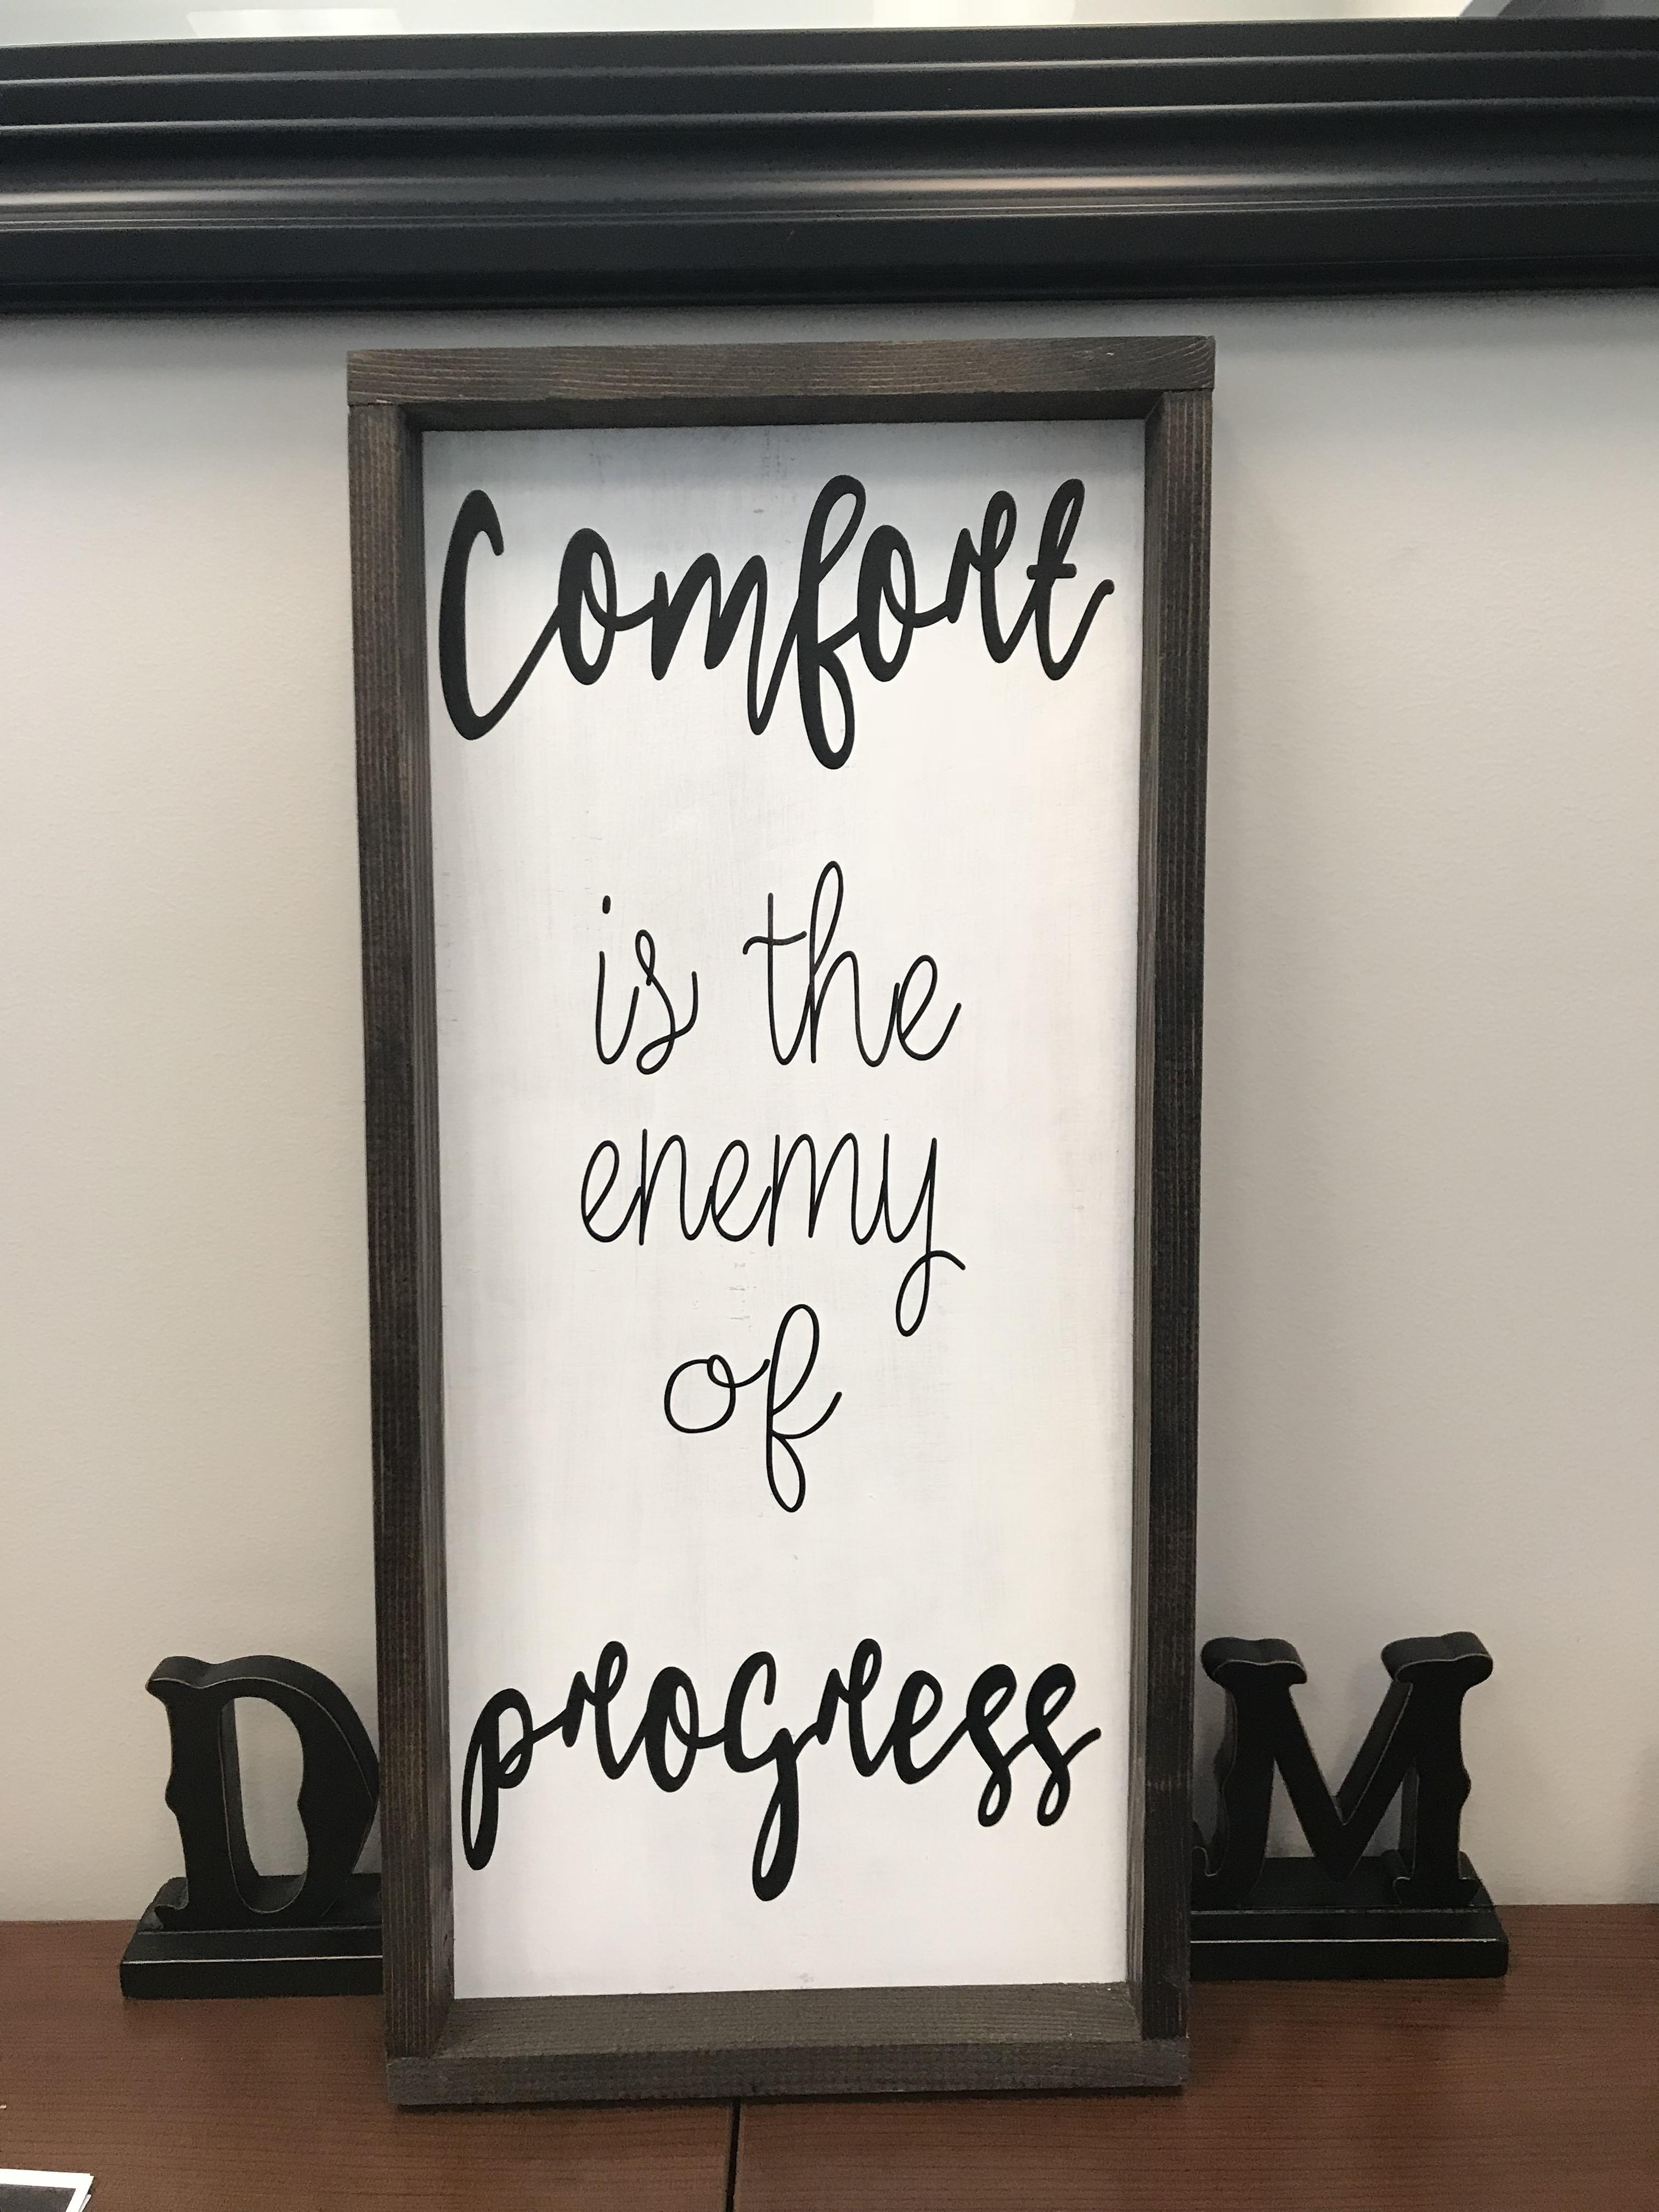 [Image] From my boss's office: